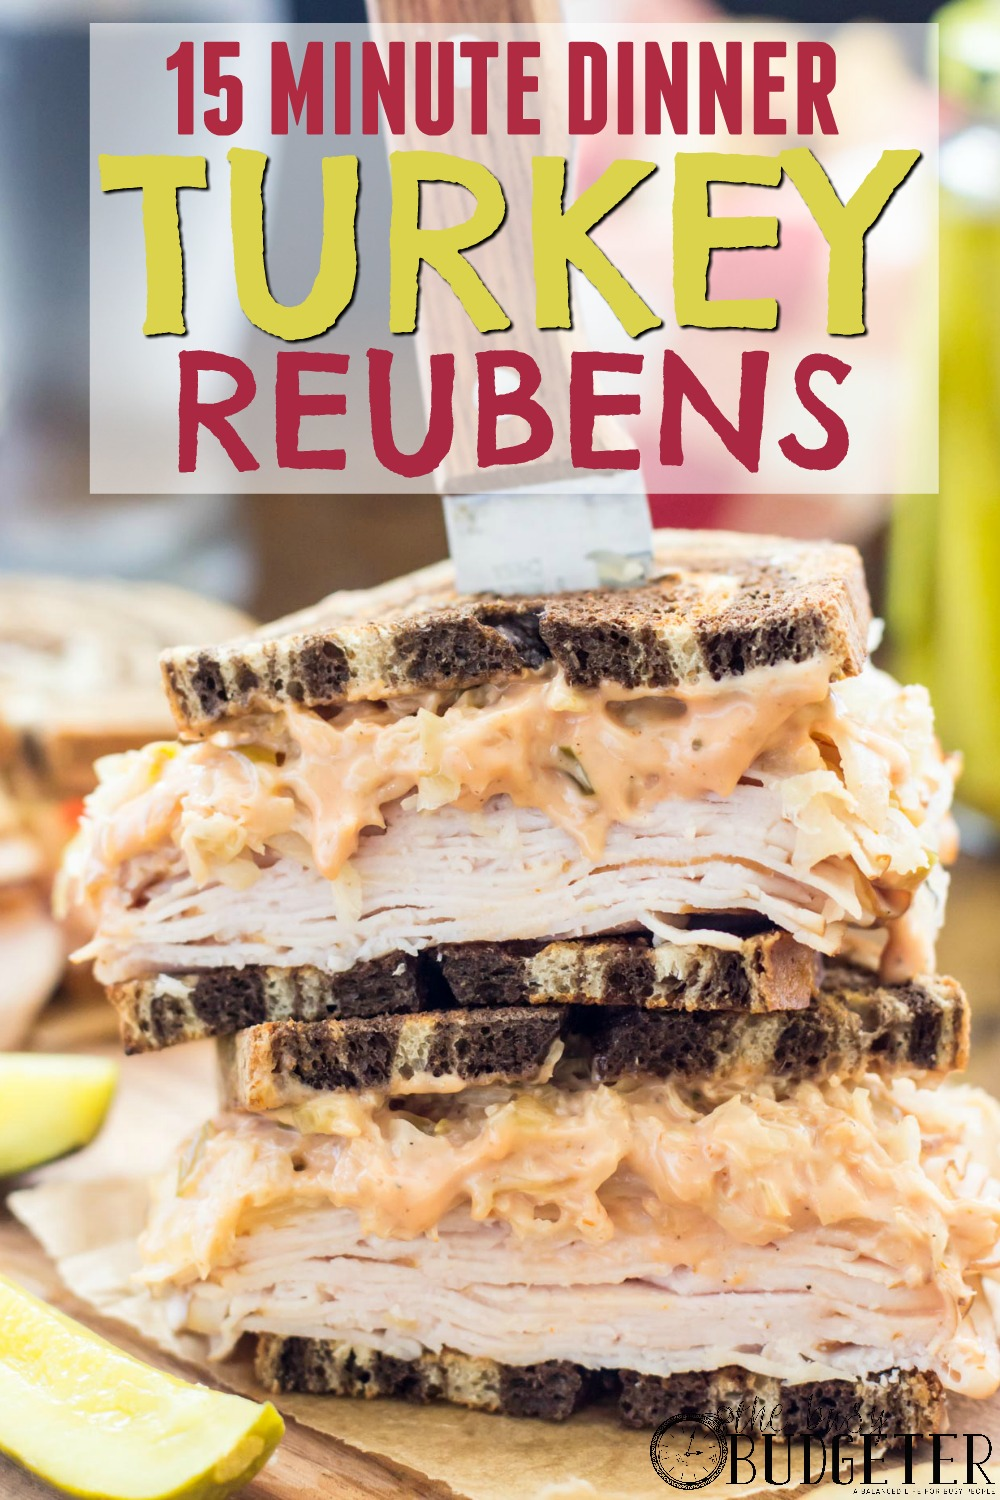 Turkey Reubens - Dinner in 15 minutes! Turkey Rueben sandwiches are our go to meal for quick and easy cheap dinners! Quick dinner recipes are a must in a house of 6 kids!